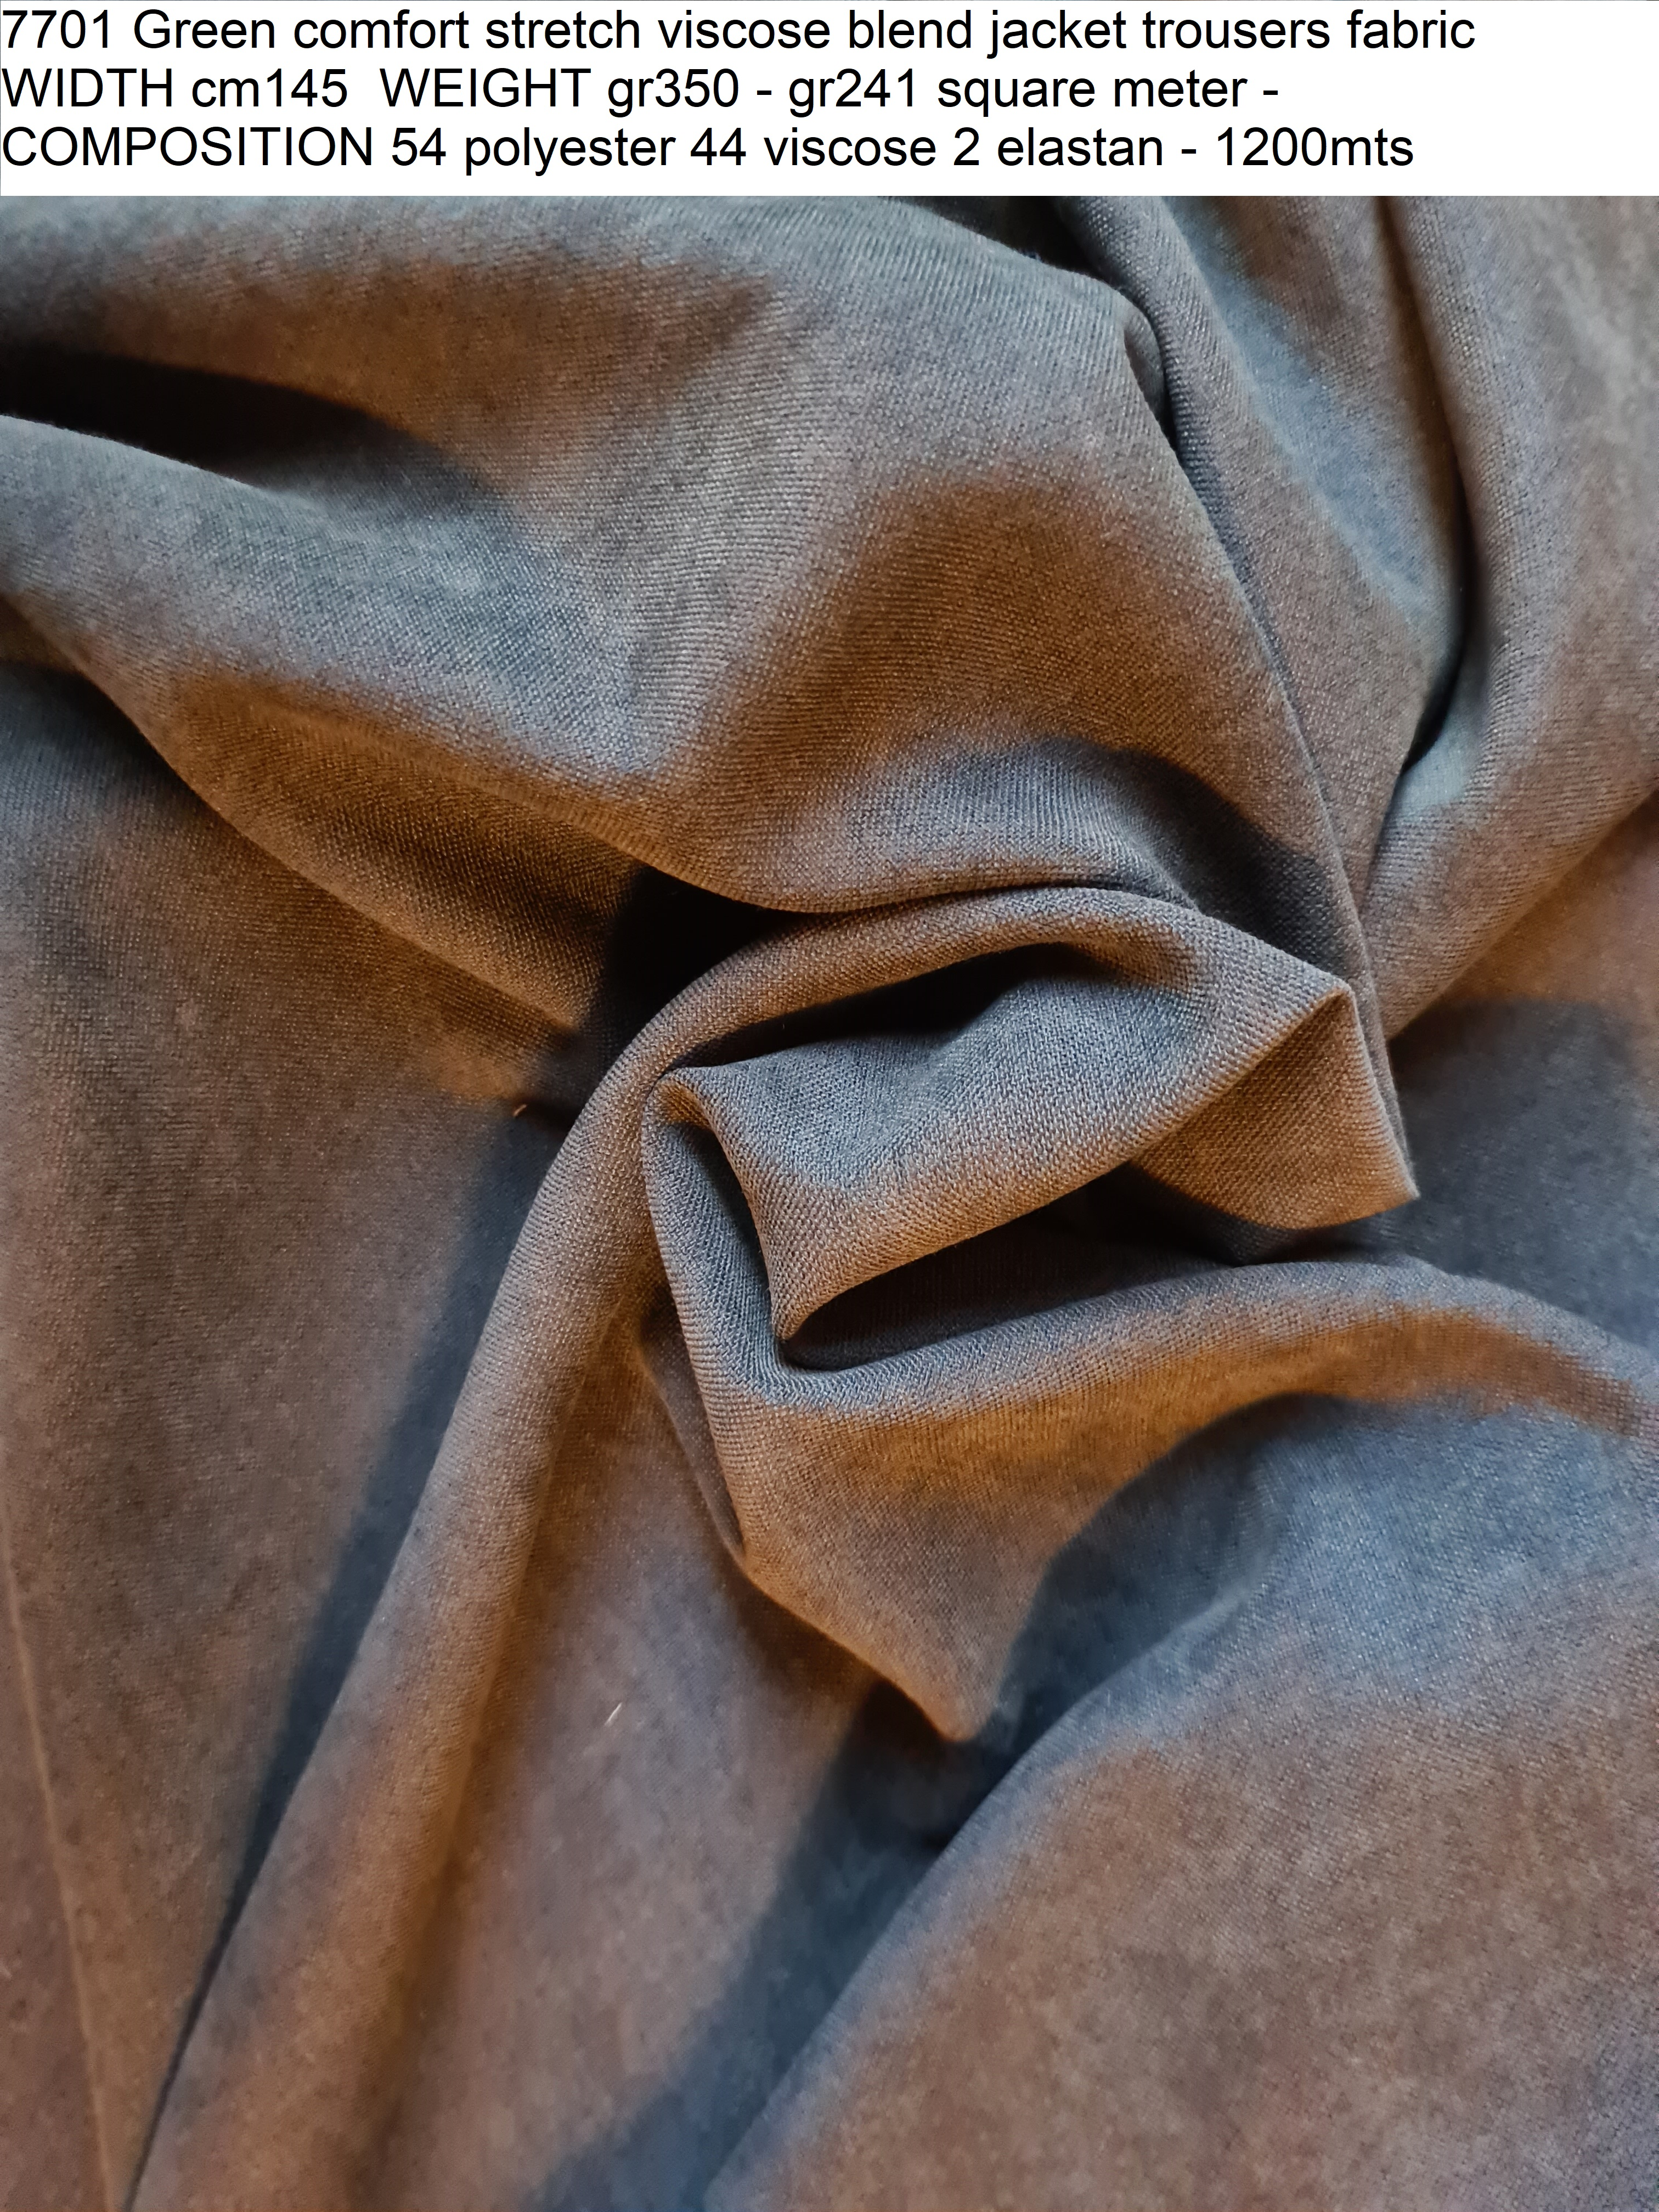 7701 Green comfort stretch viscose blend jacket trousers fabric WIDTH cm145 WEIGHT gr350 - gr241 square meter - COMPOSITION 54 polyester 44 viscose 2 elastan - 1200mts